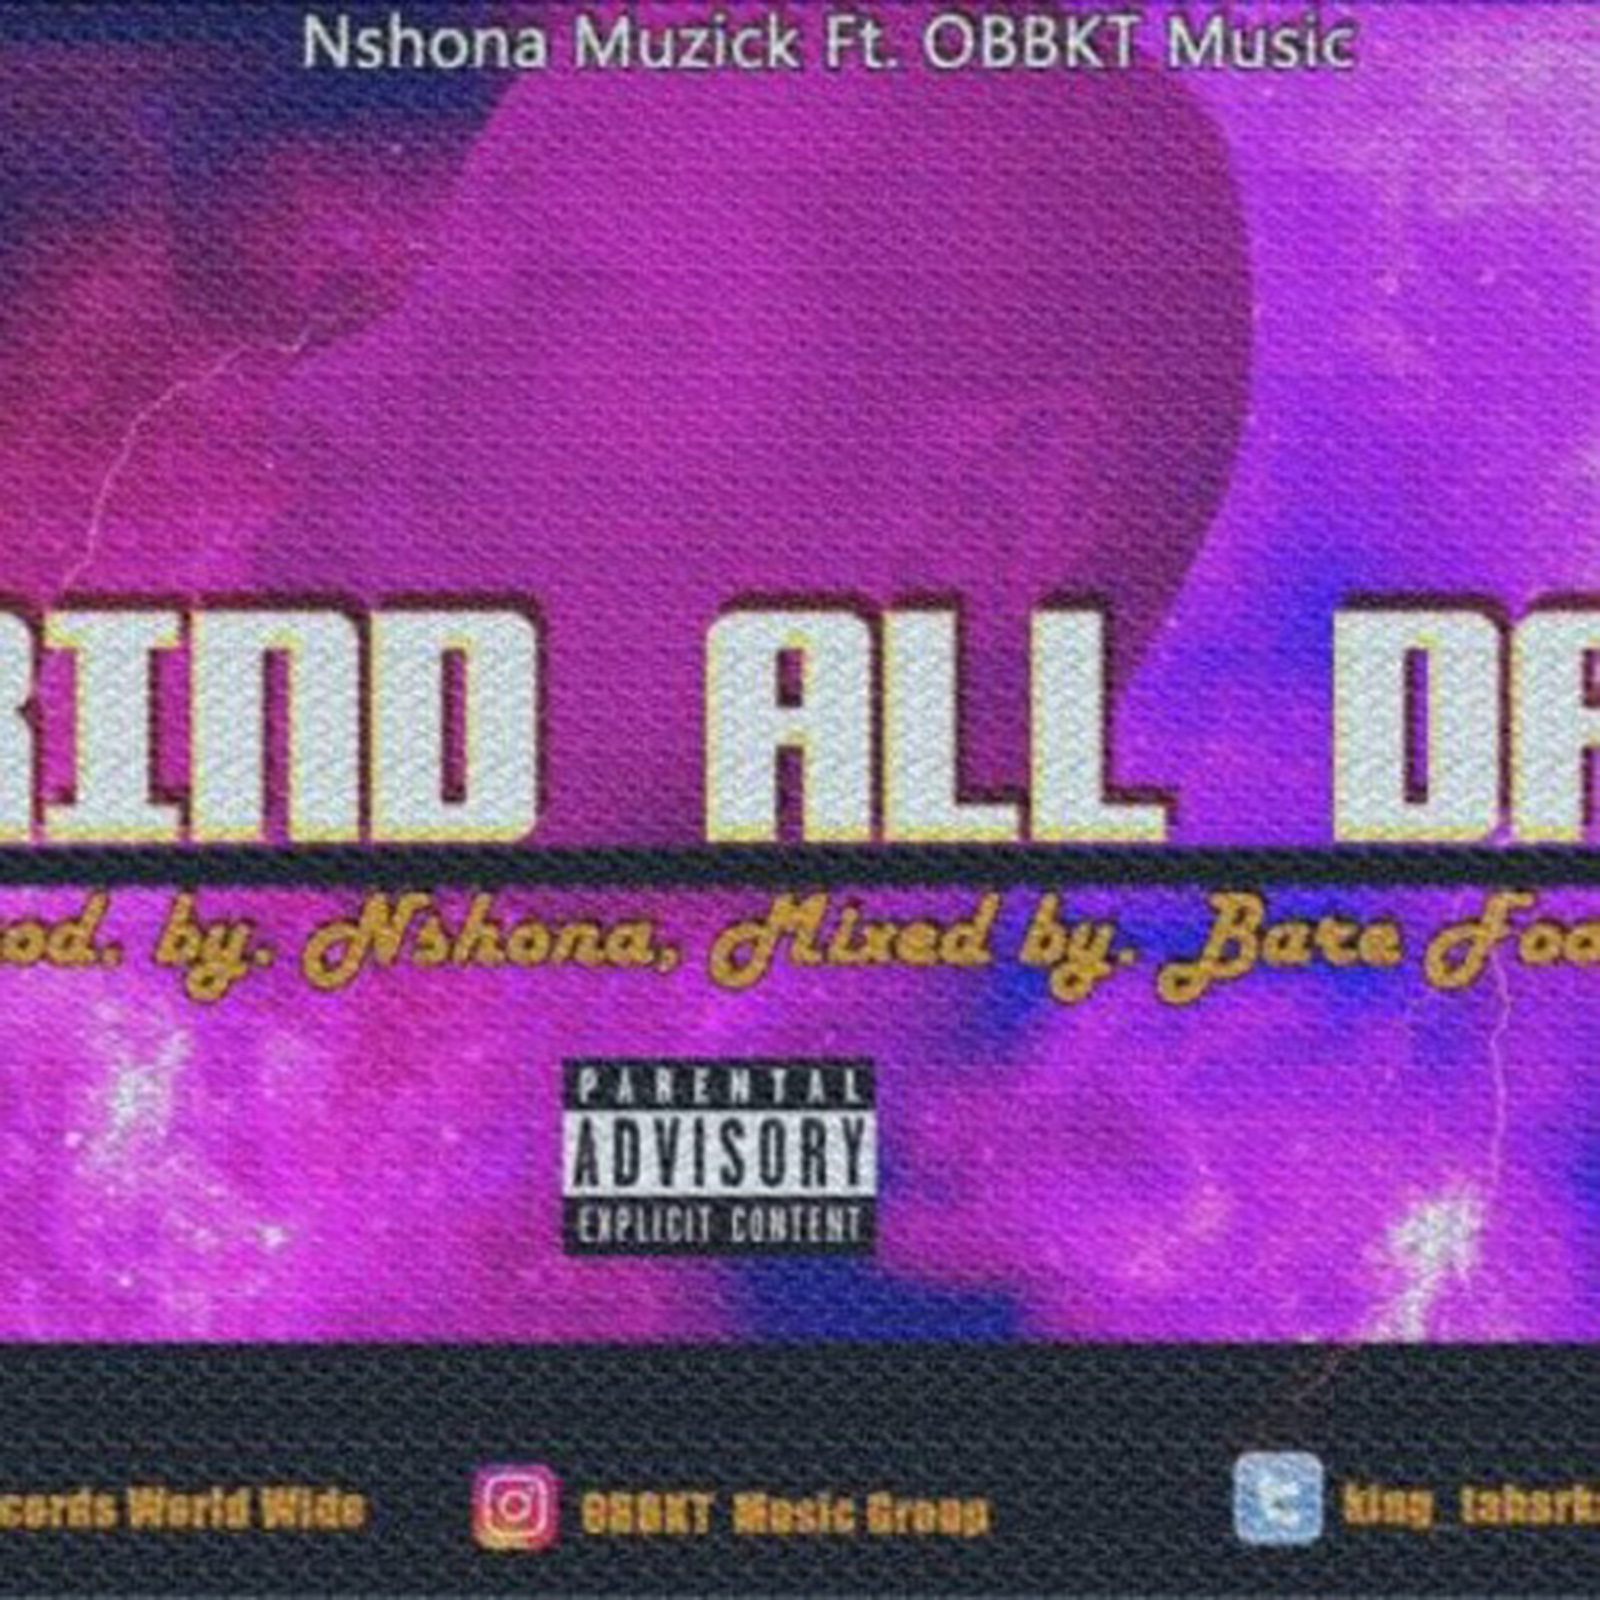 Grind All Day by Nshona Muzick feat. OBBKT Music